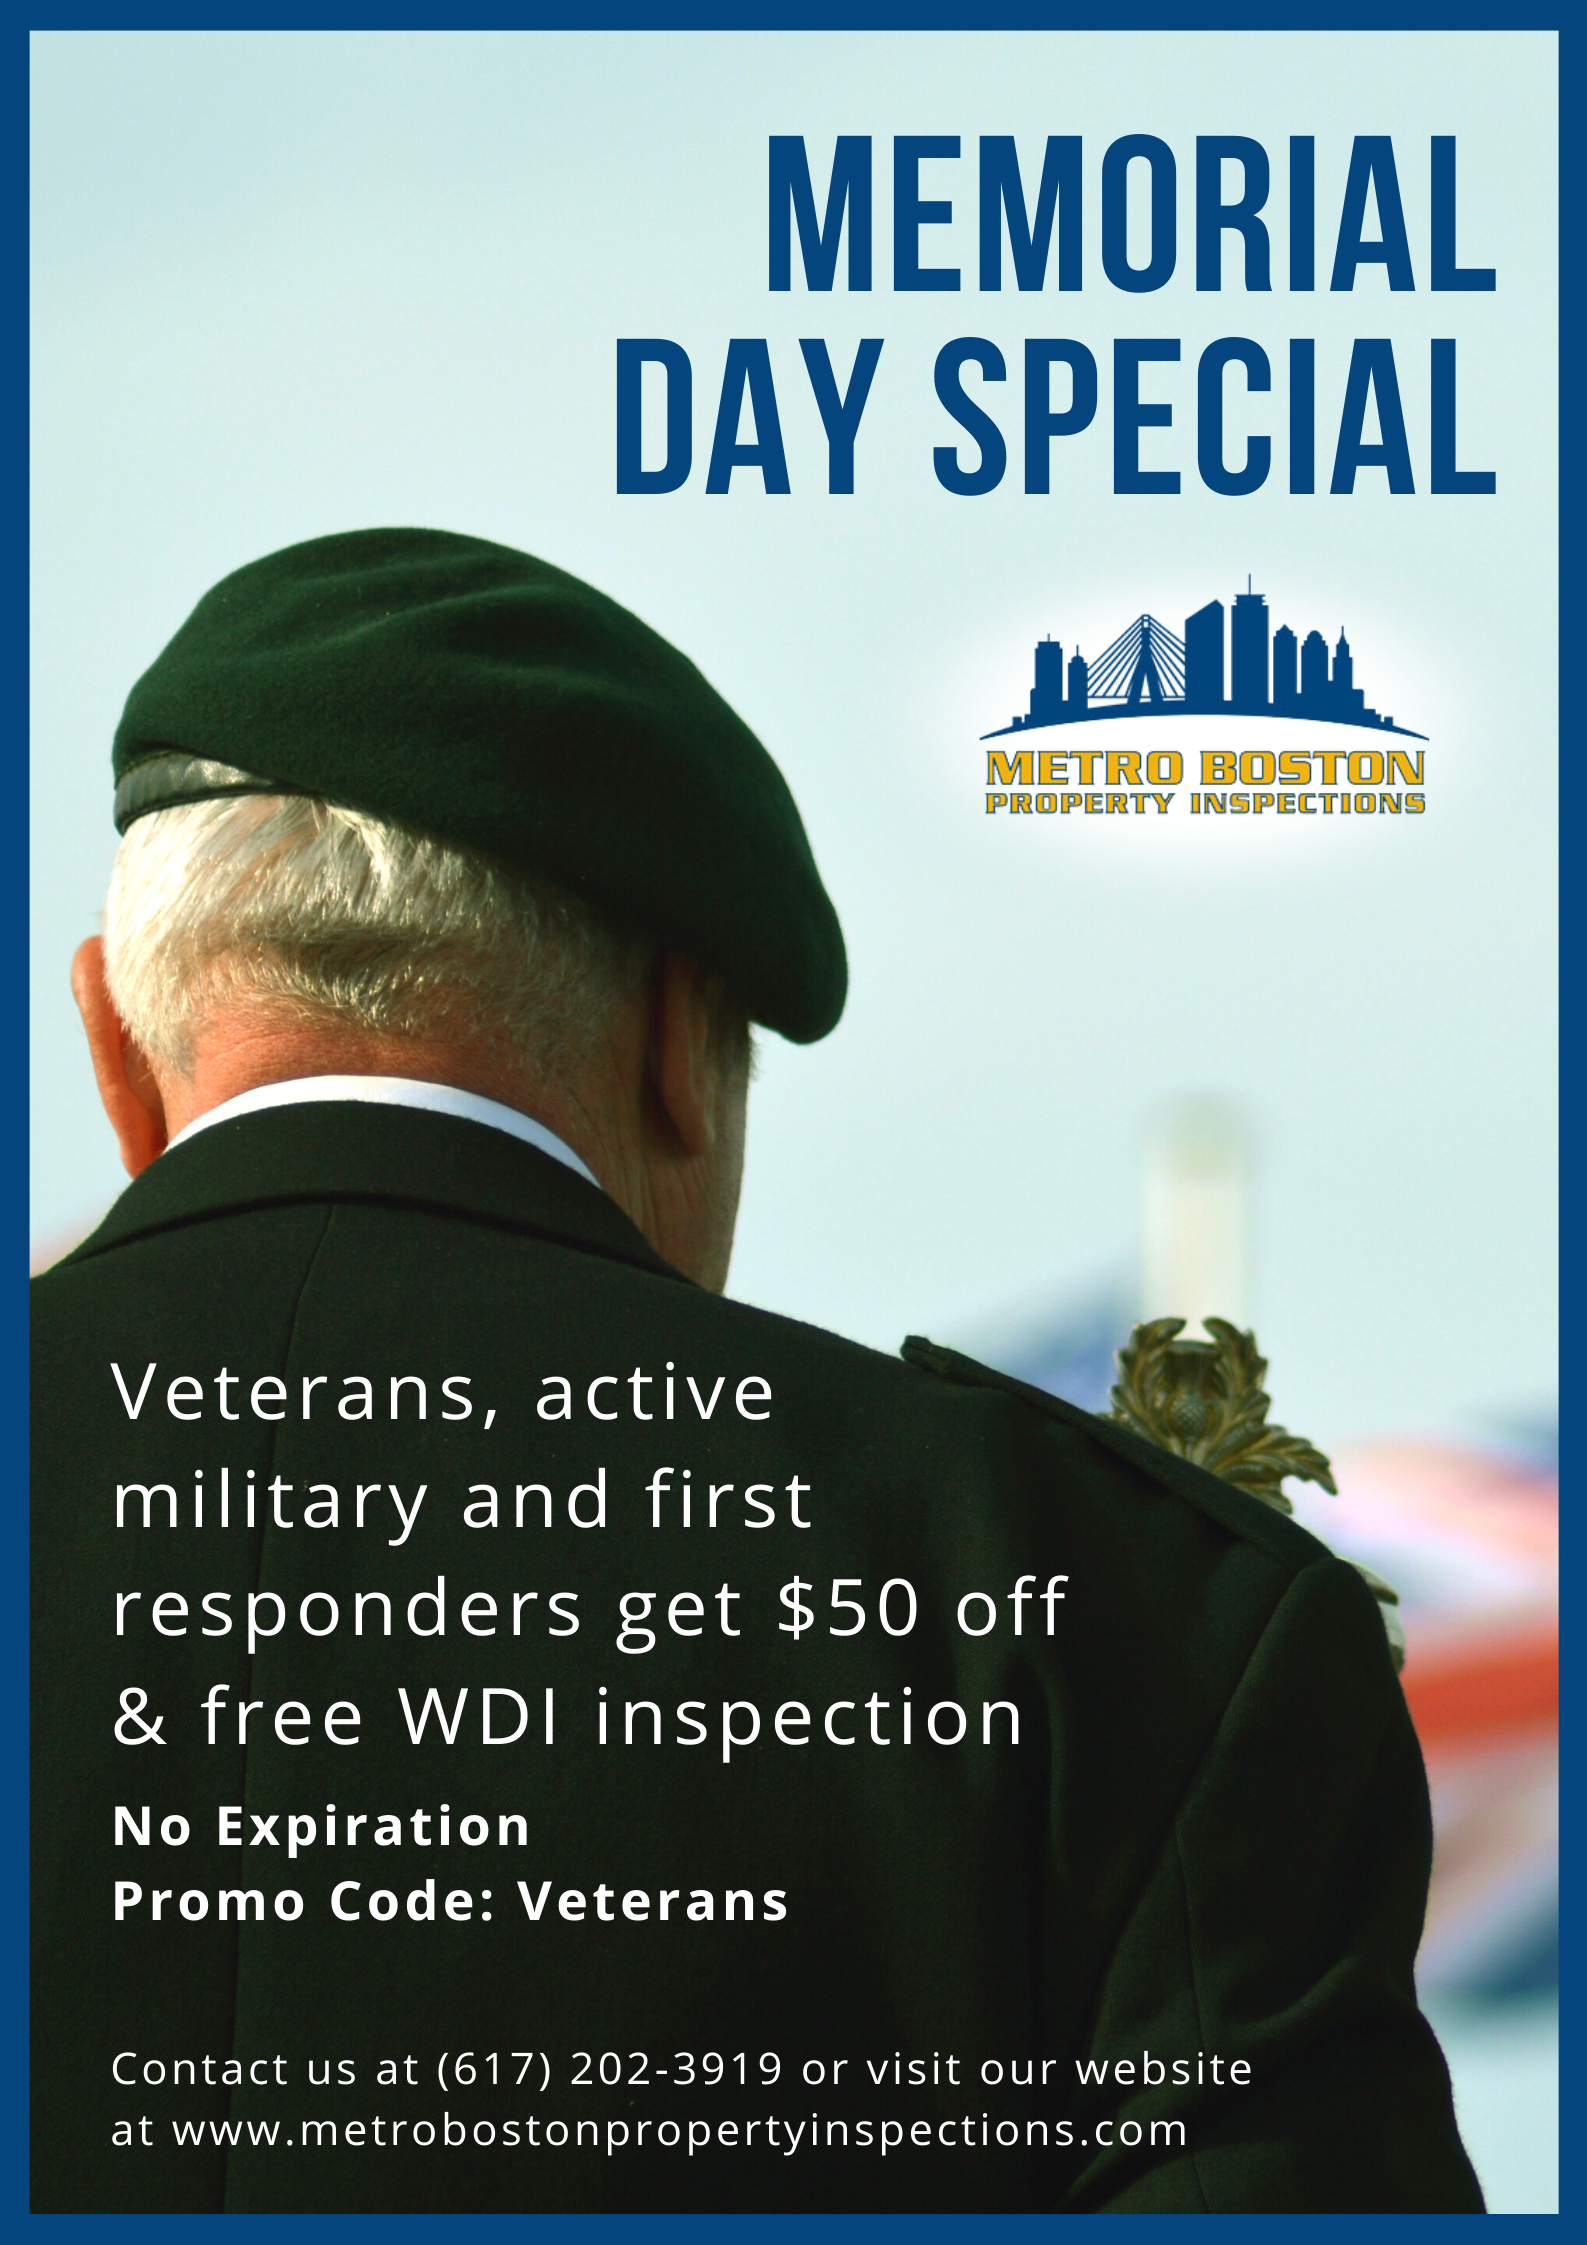 Home Inspection Boston - Memorial day special